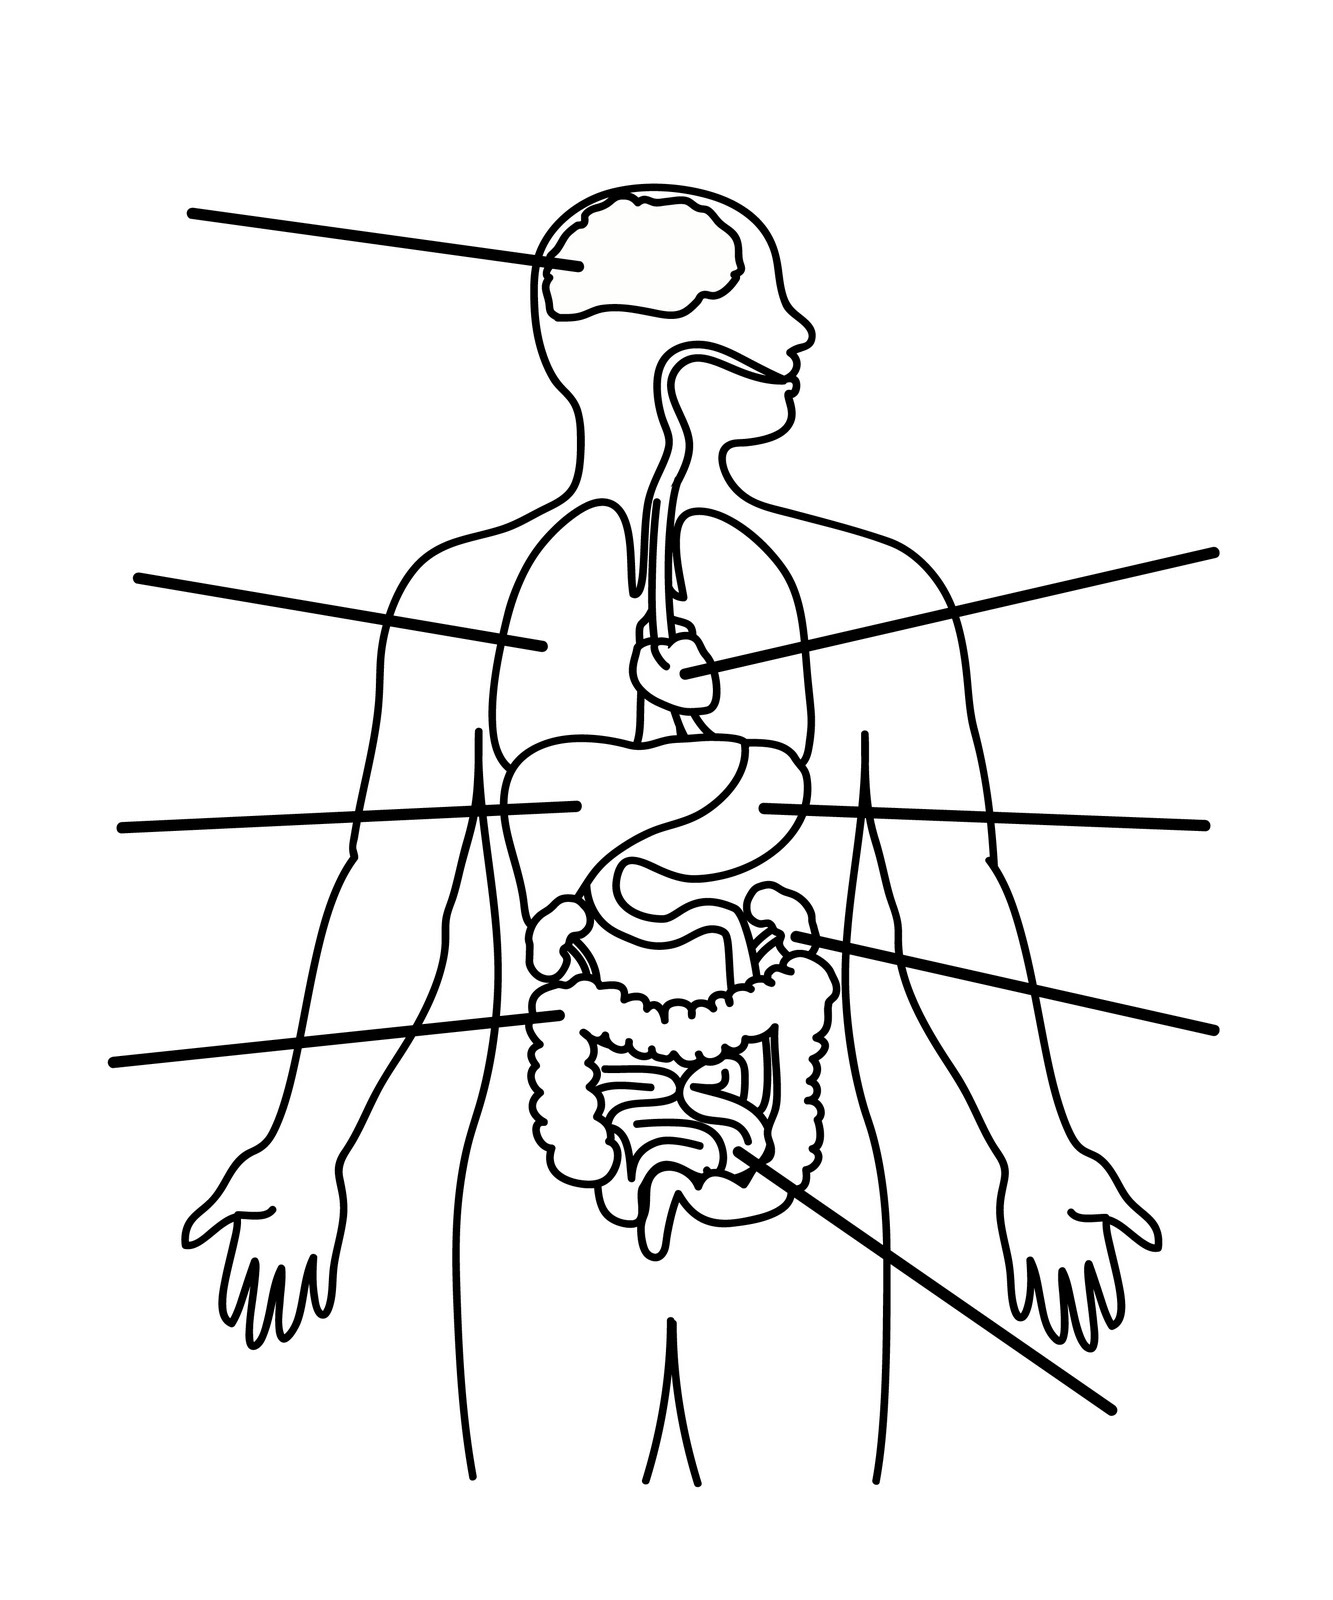 1333x1600 Body Outline Drawing Human Body Outline Printable Free Download